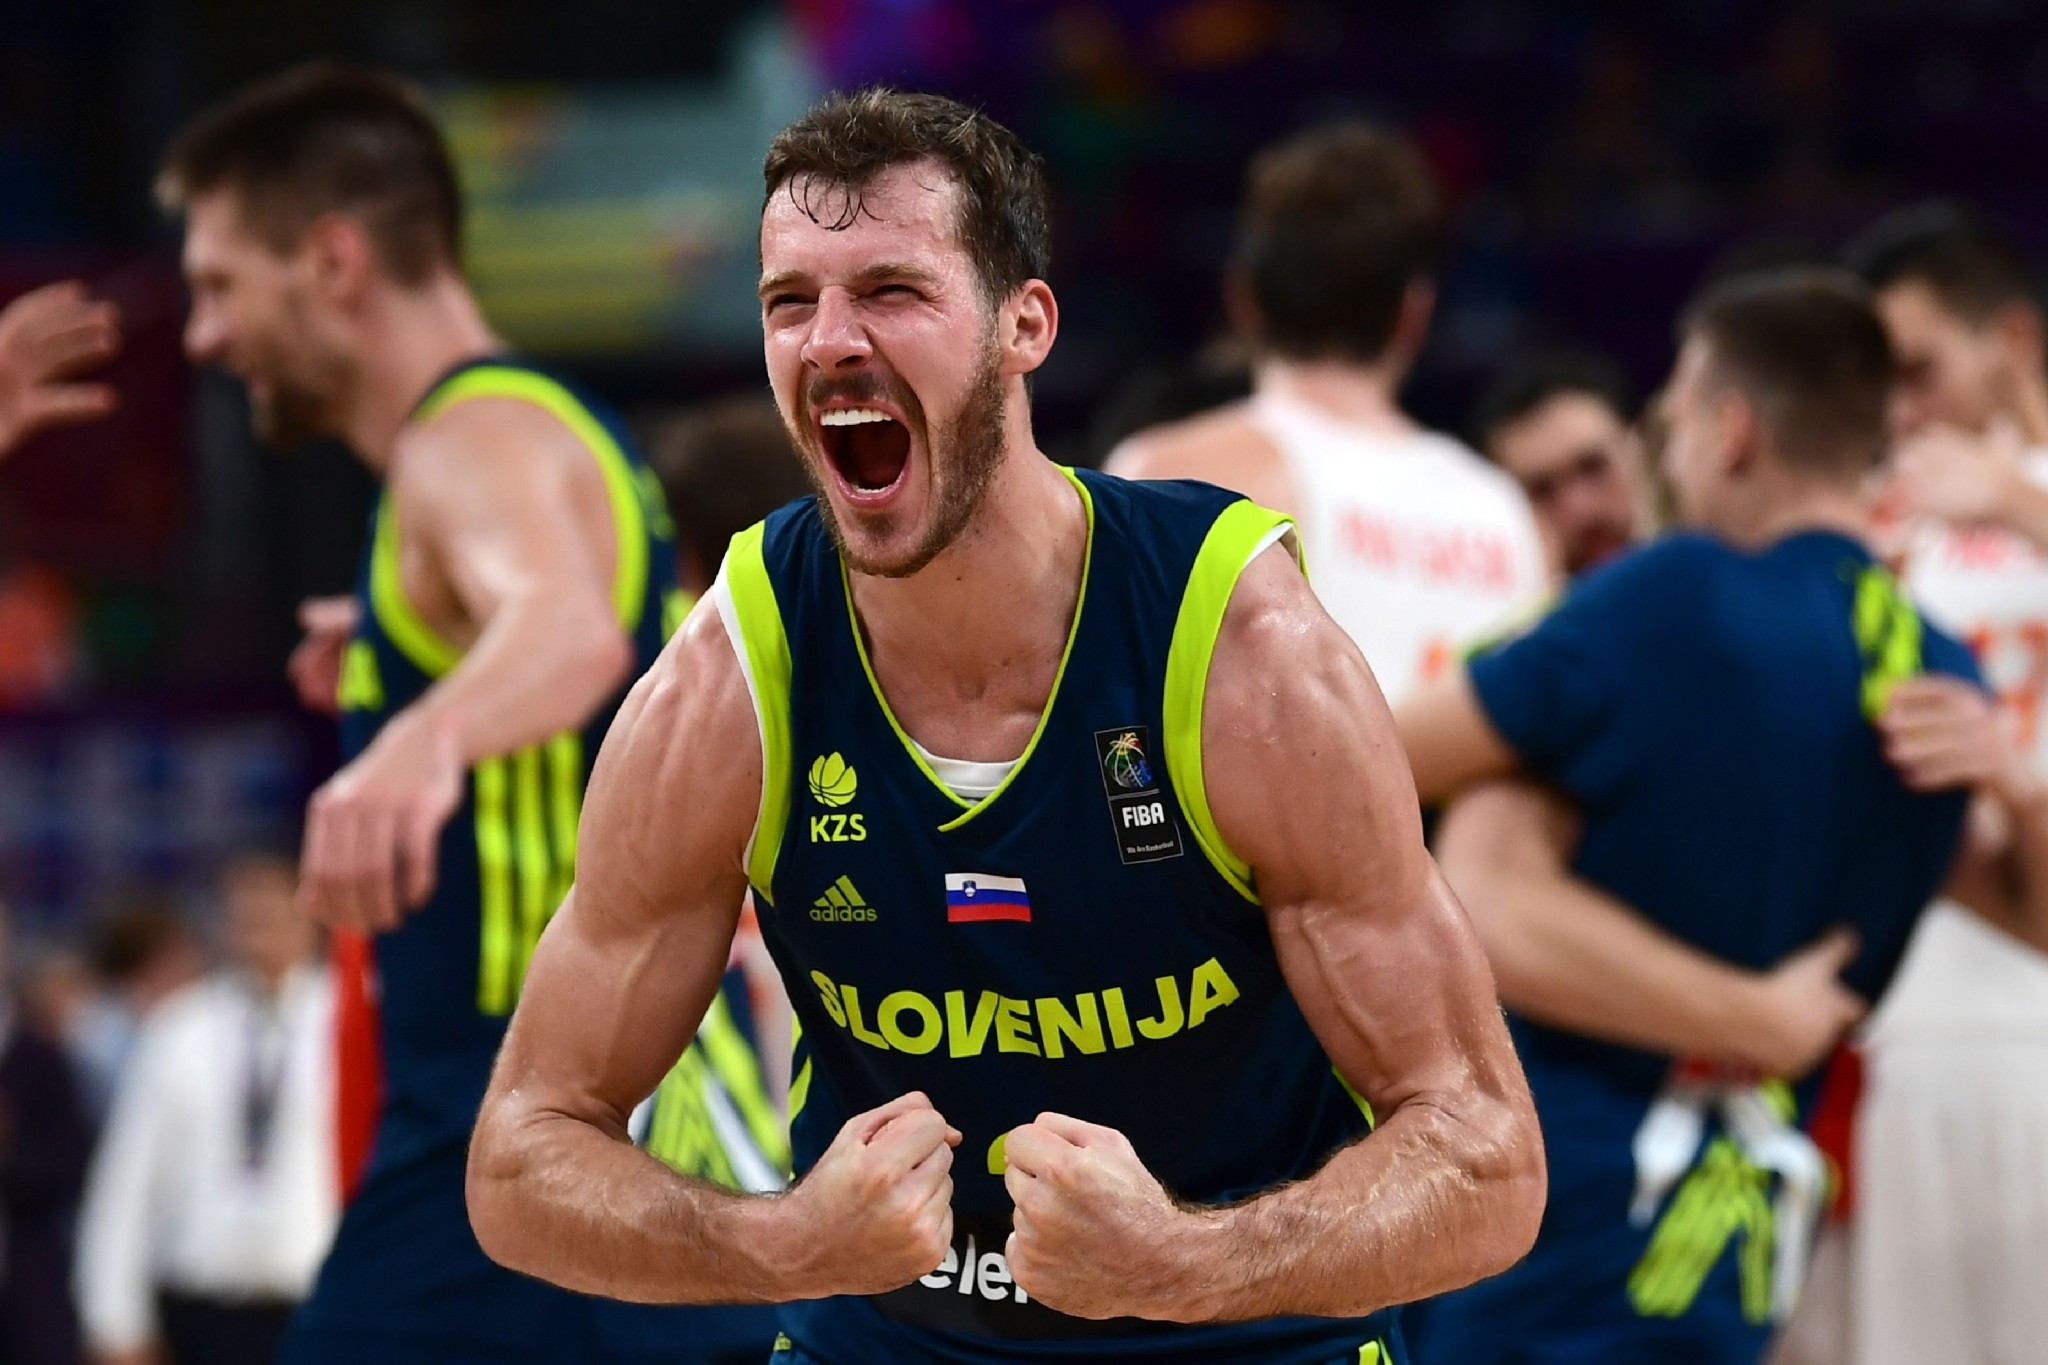 Slovenia stunned Spain to reach the EuroBasket final ©Getty Images